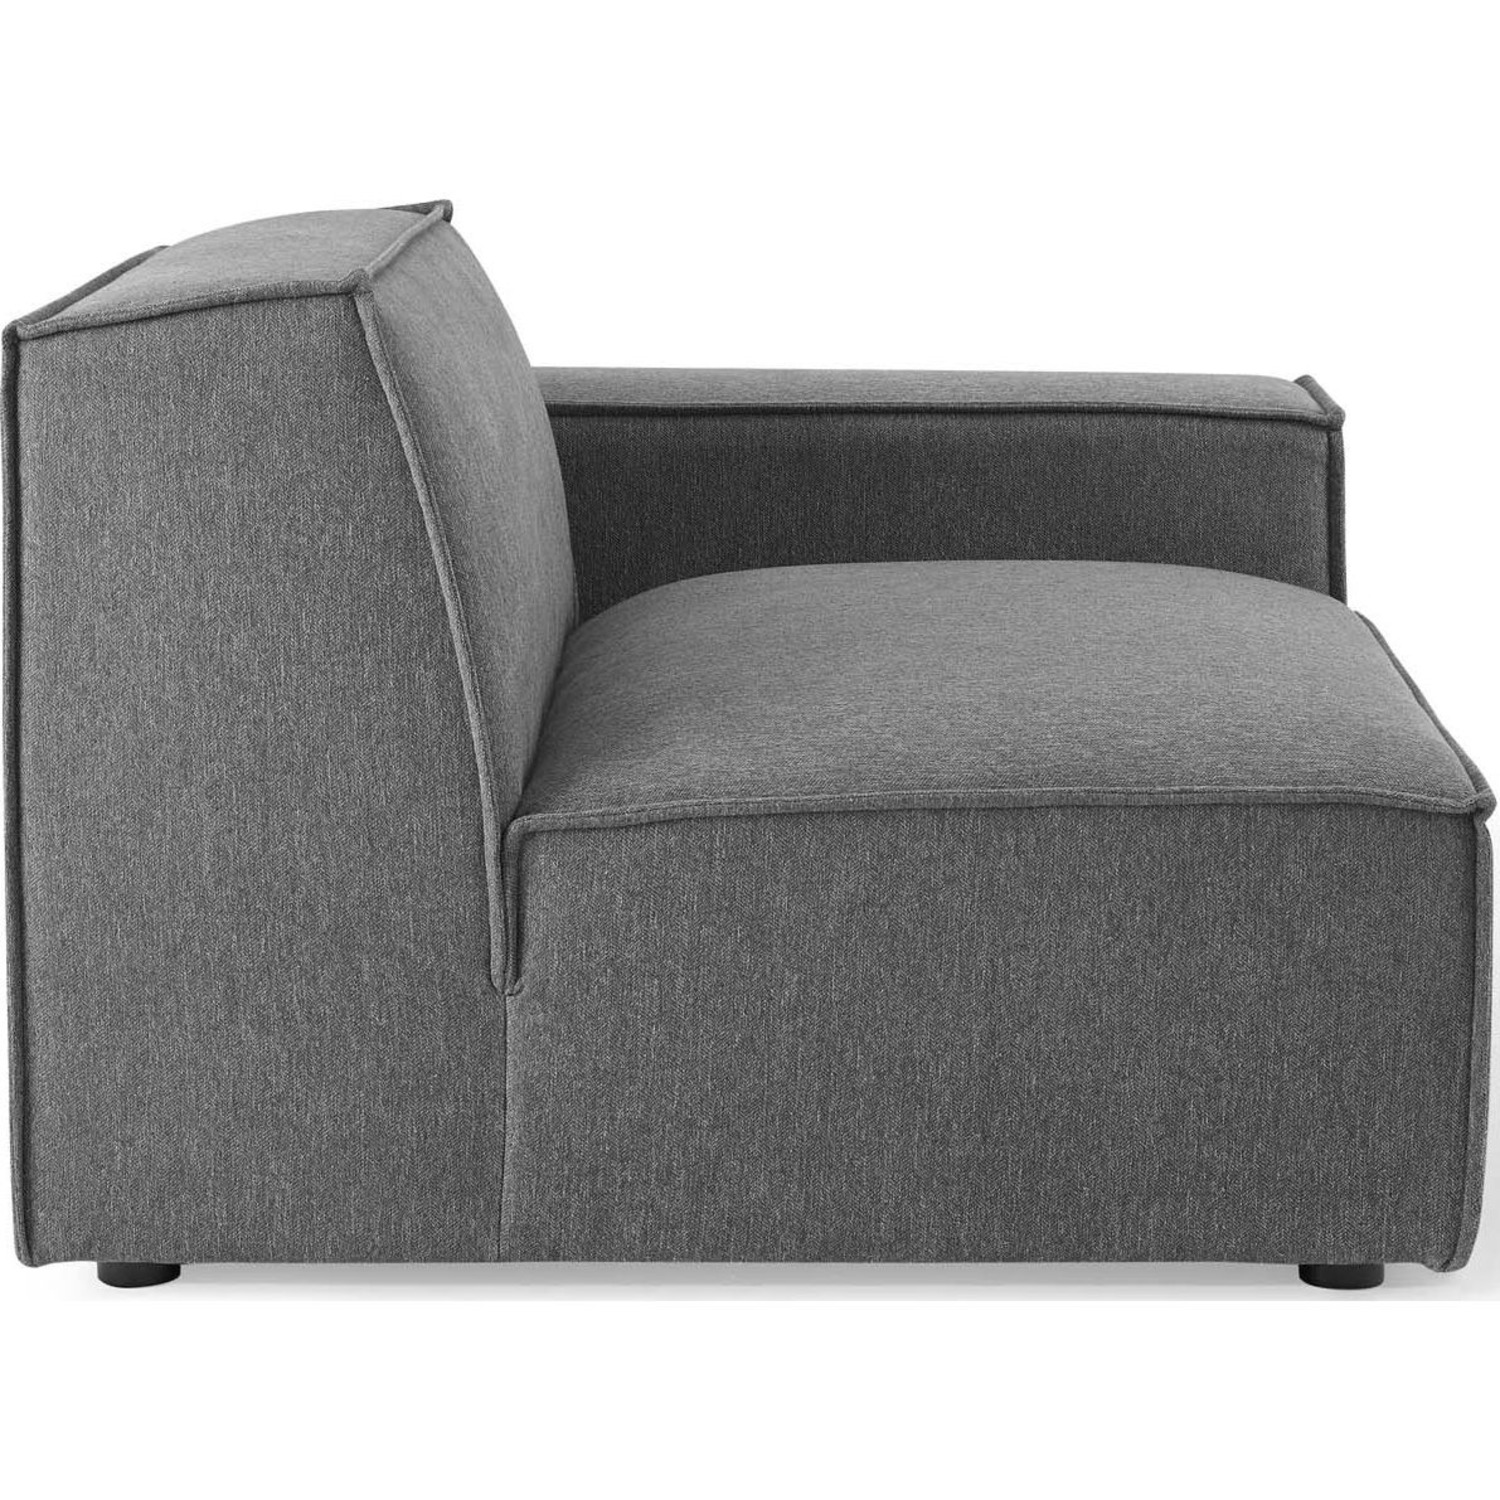 5-Piece Sectional Sofa In Charcoal Fabric - image-3